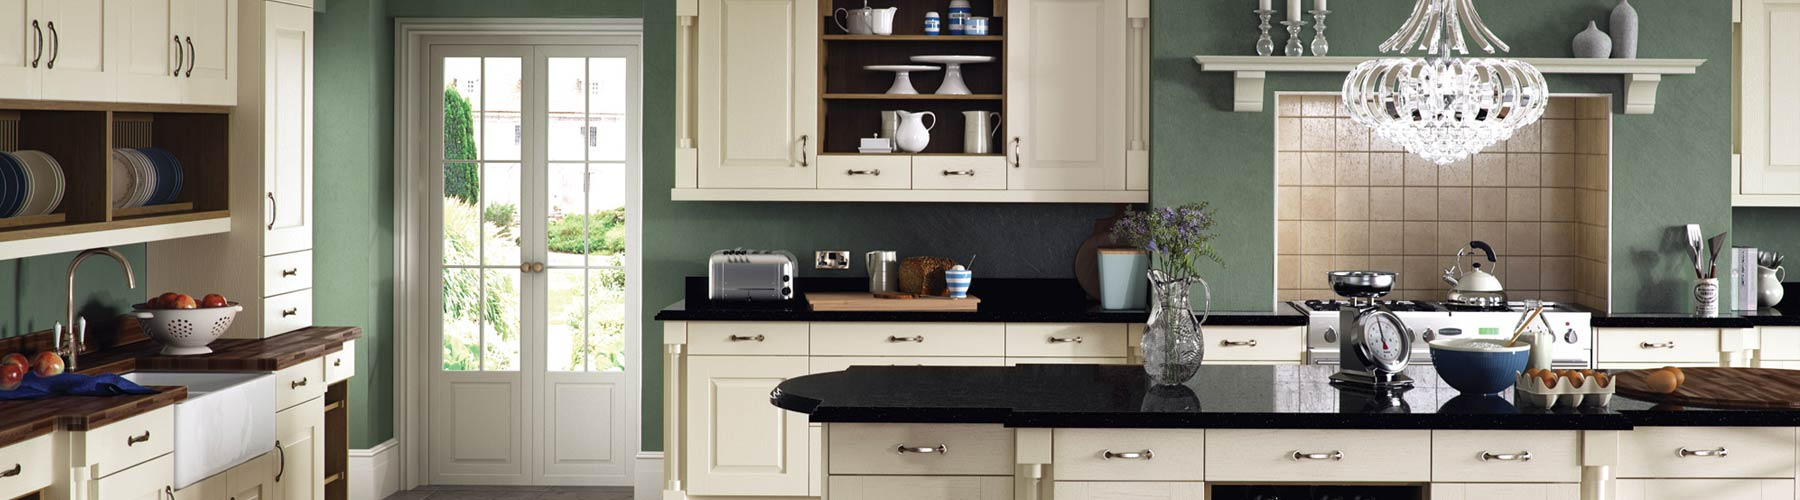 A classic ivory panel kitchen with unique detailing and granite worktops.